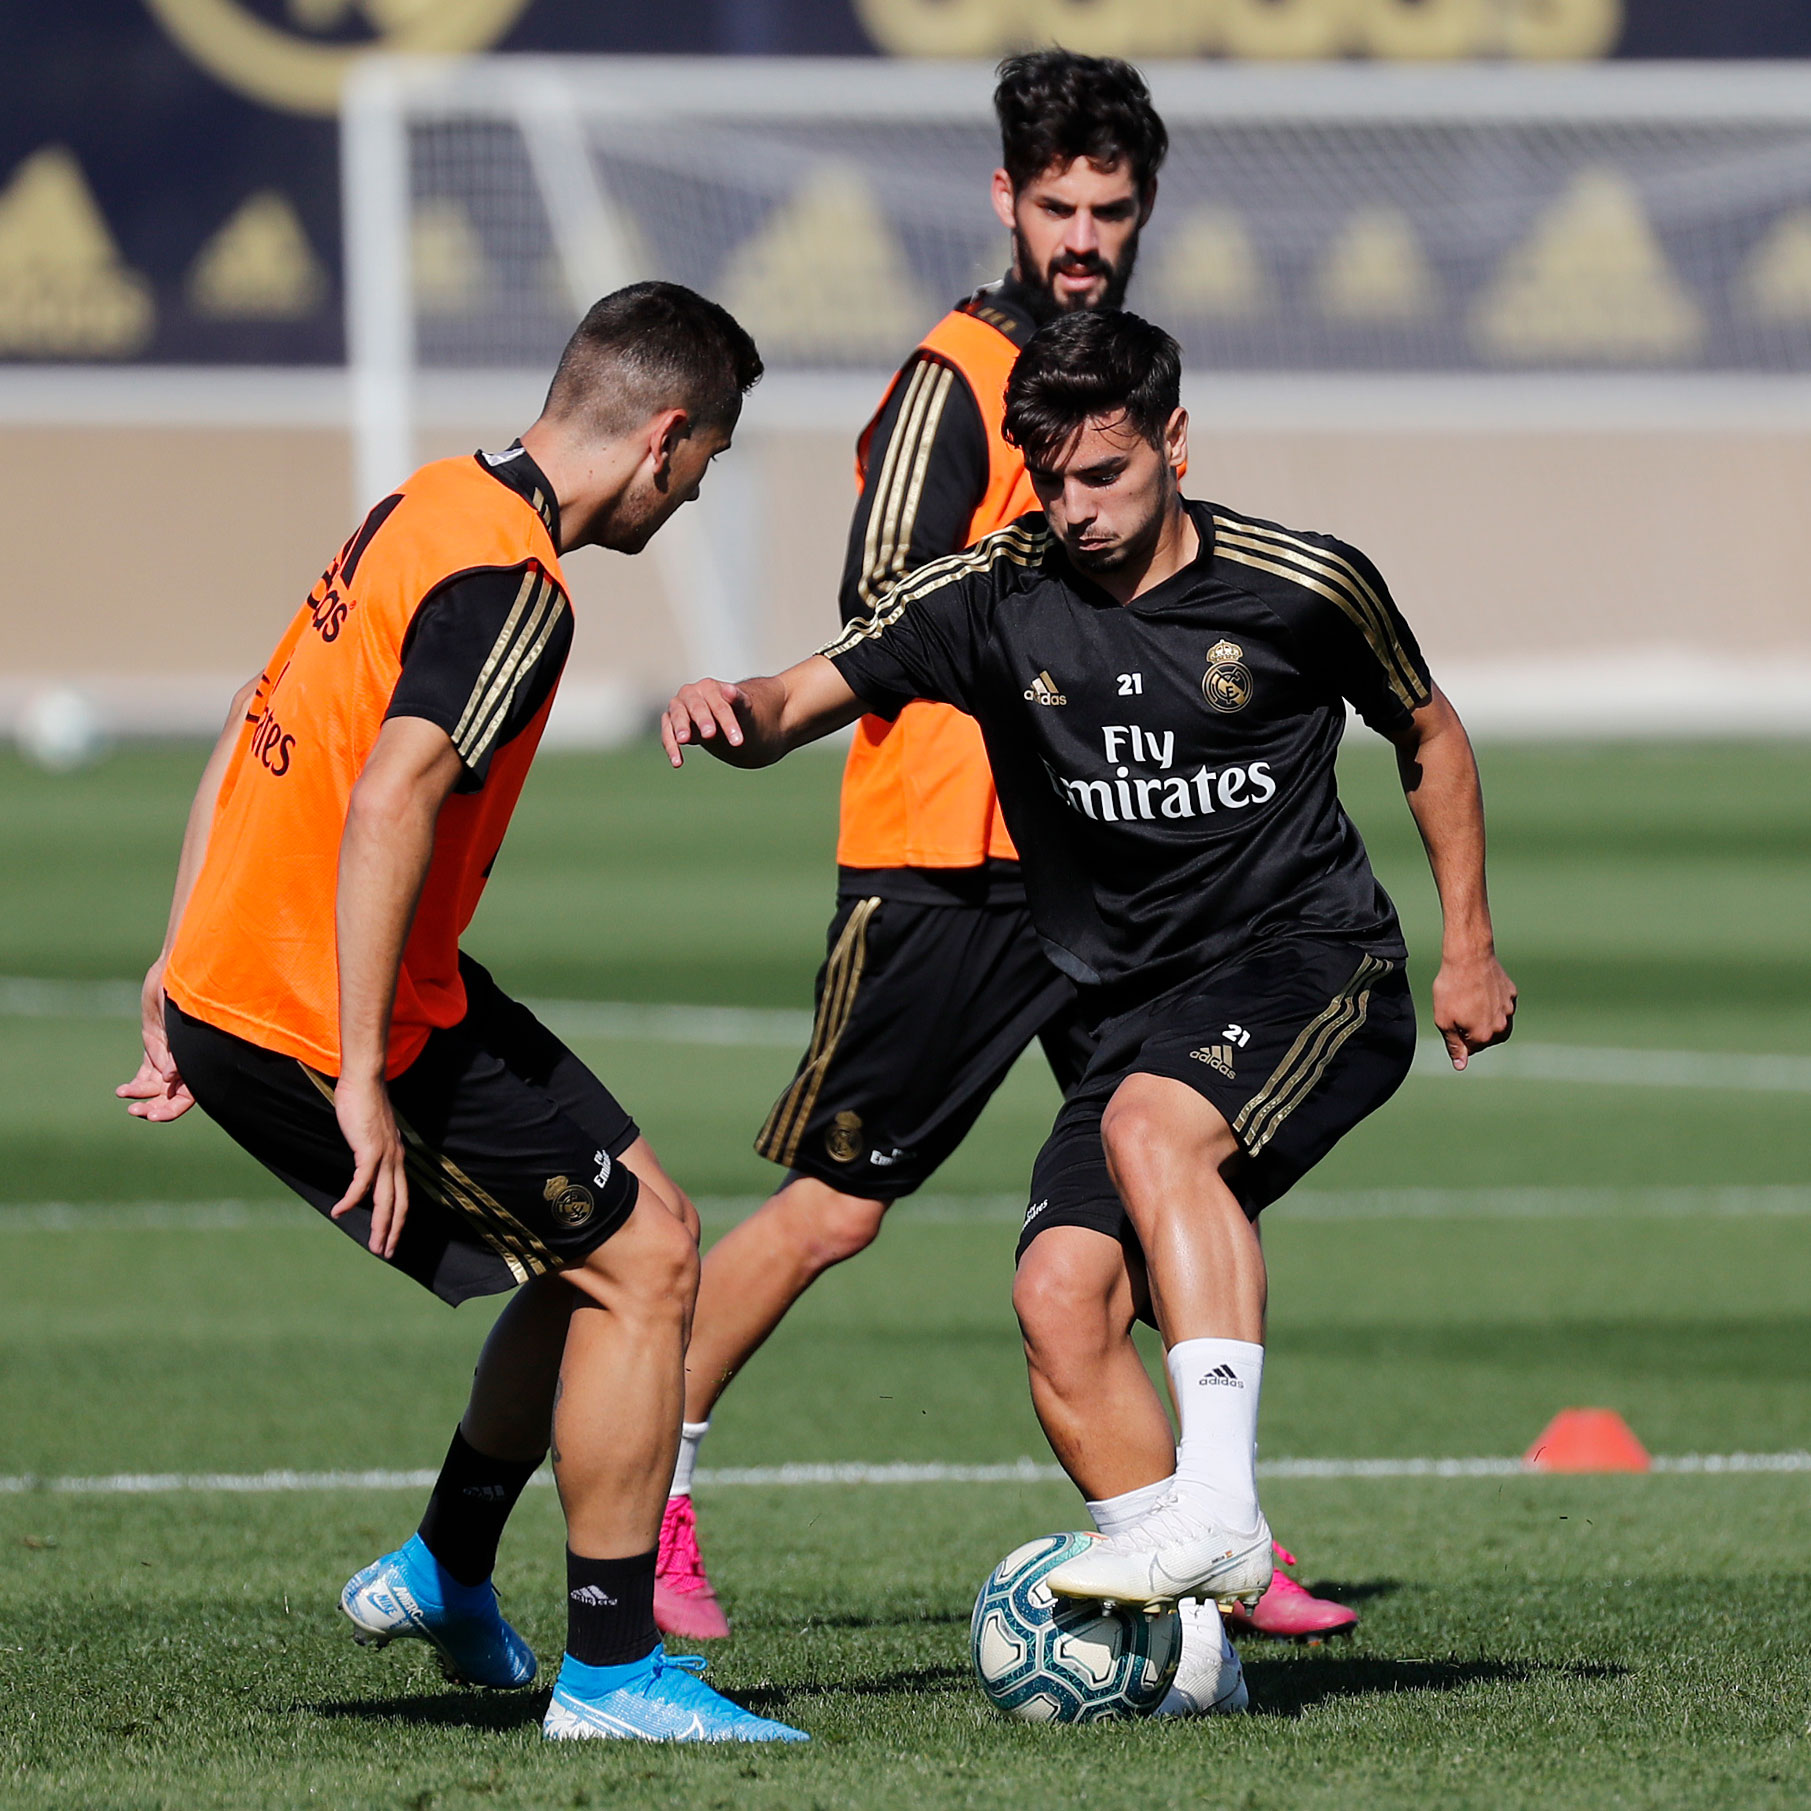 Real Madrid - Entrenamiento del Real Madrid - 02-10-2019